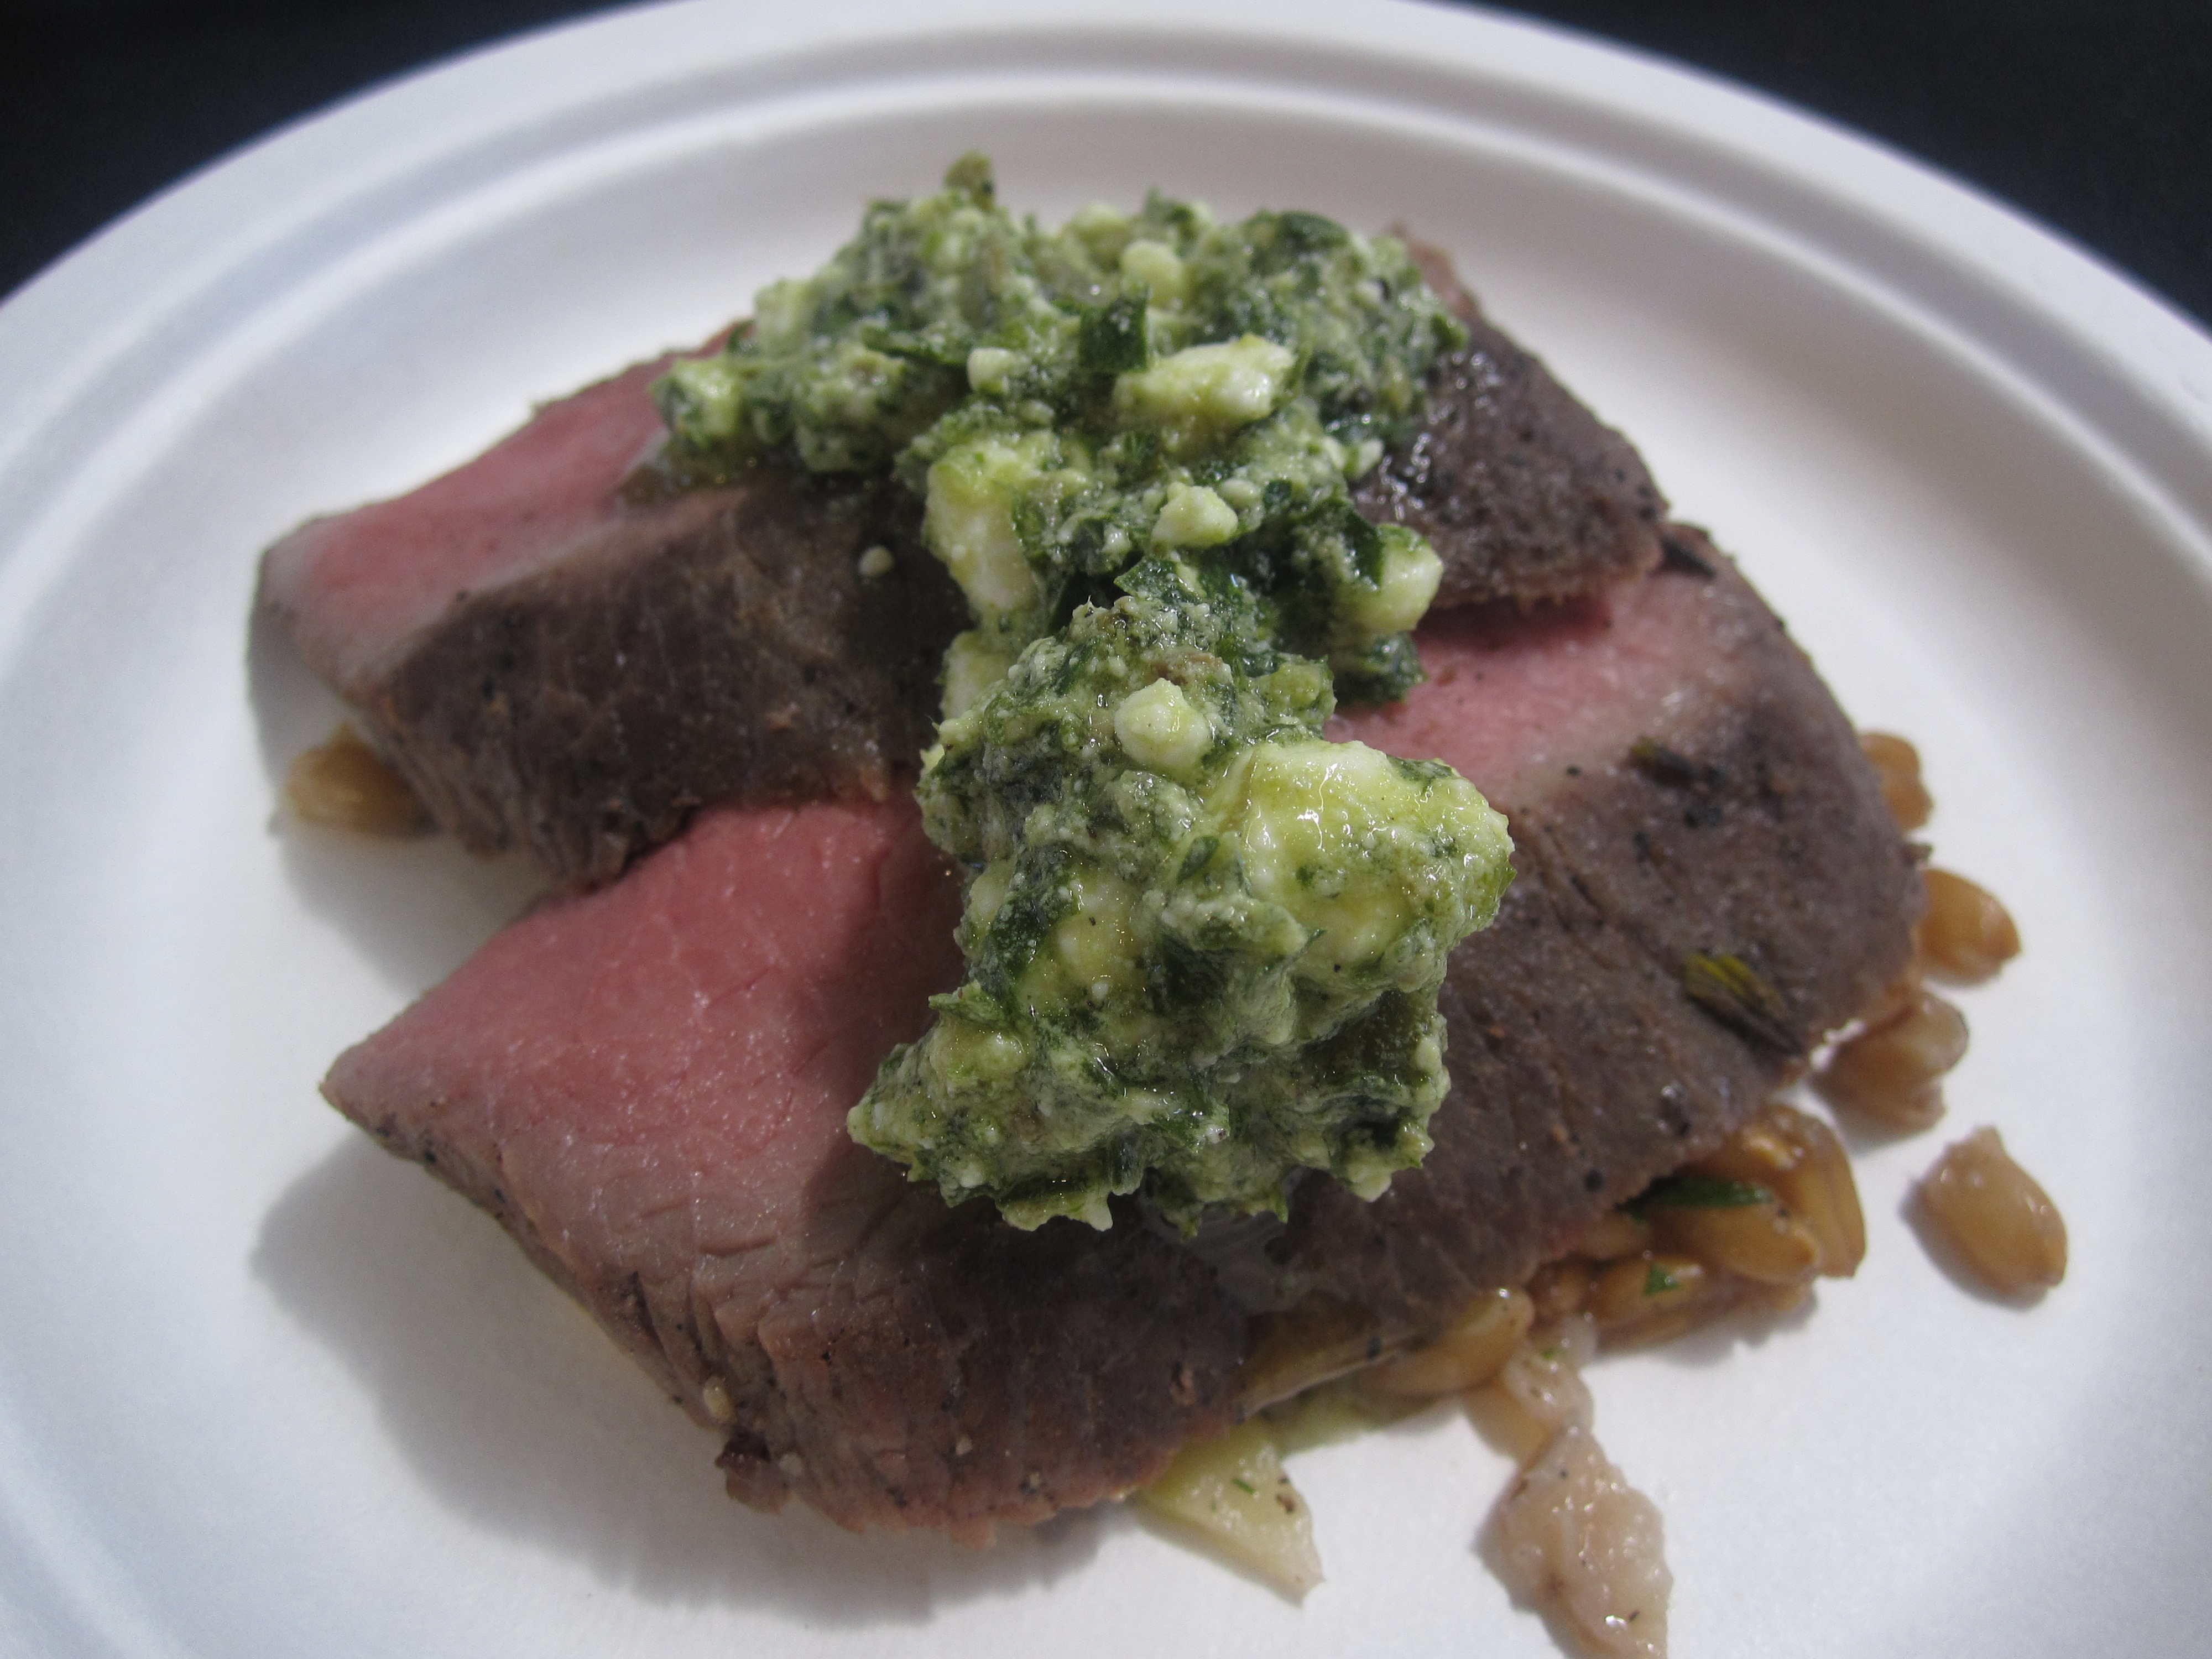 On to the lamb loin: this lamb with spinach and feta salsa verde was good but lacked something to make it really stand out.